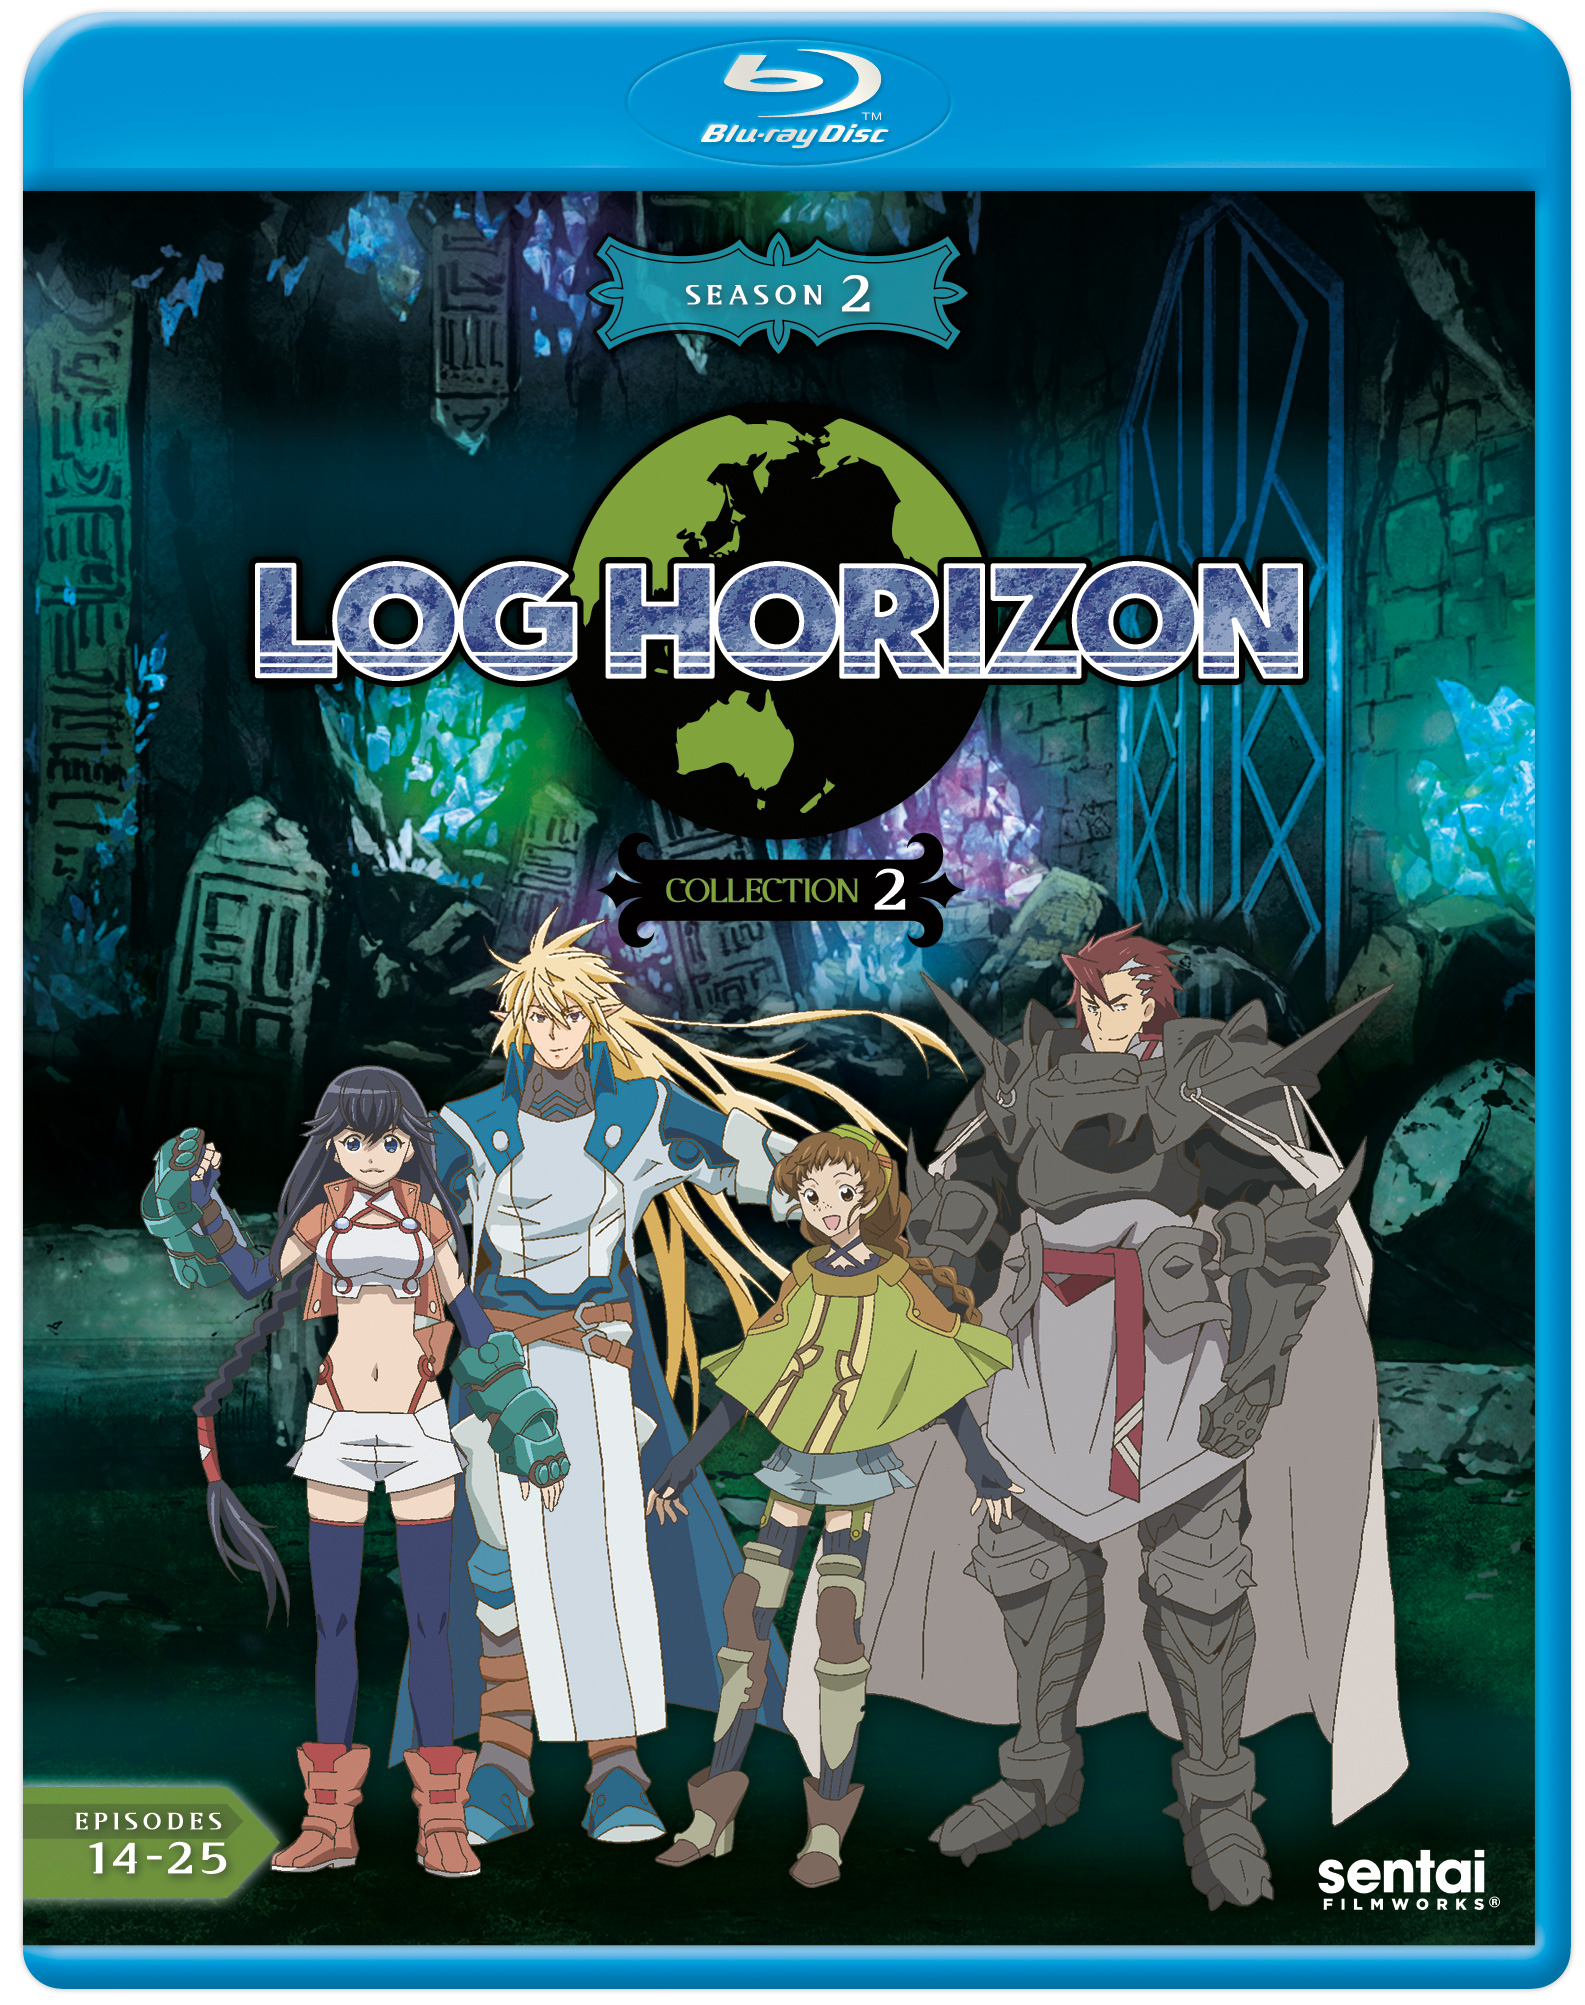 Log Horizon 2 Collection 2 Blu-ray 814131017987